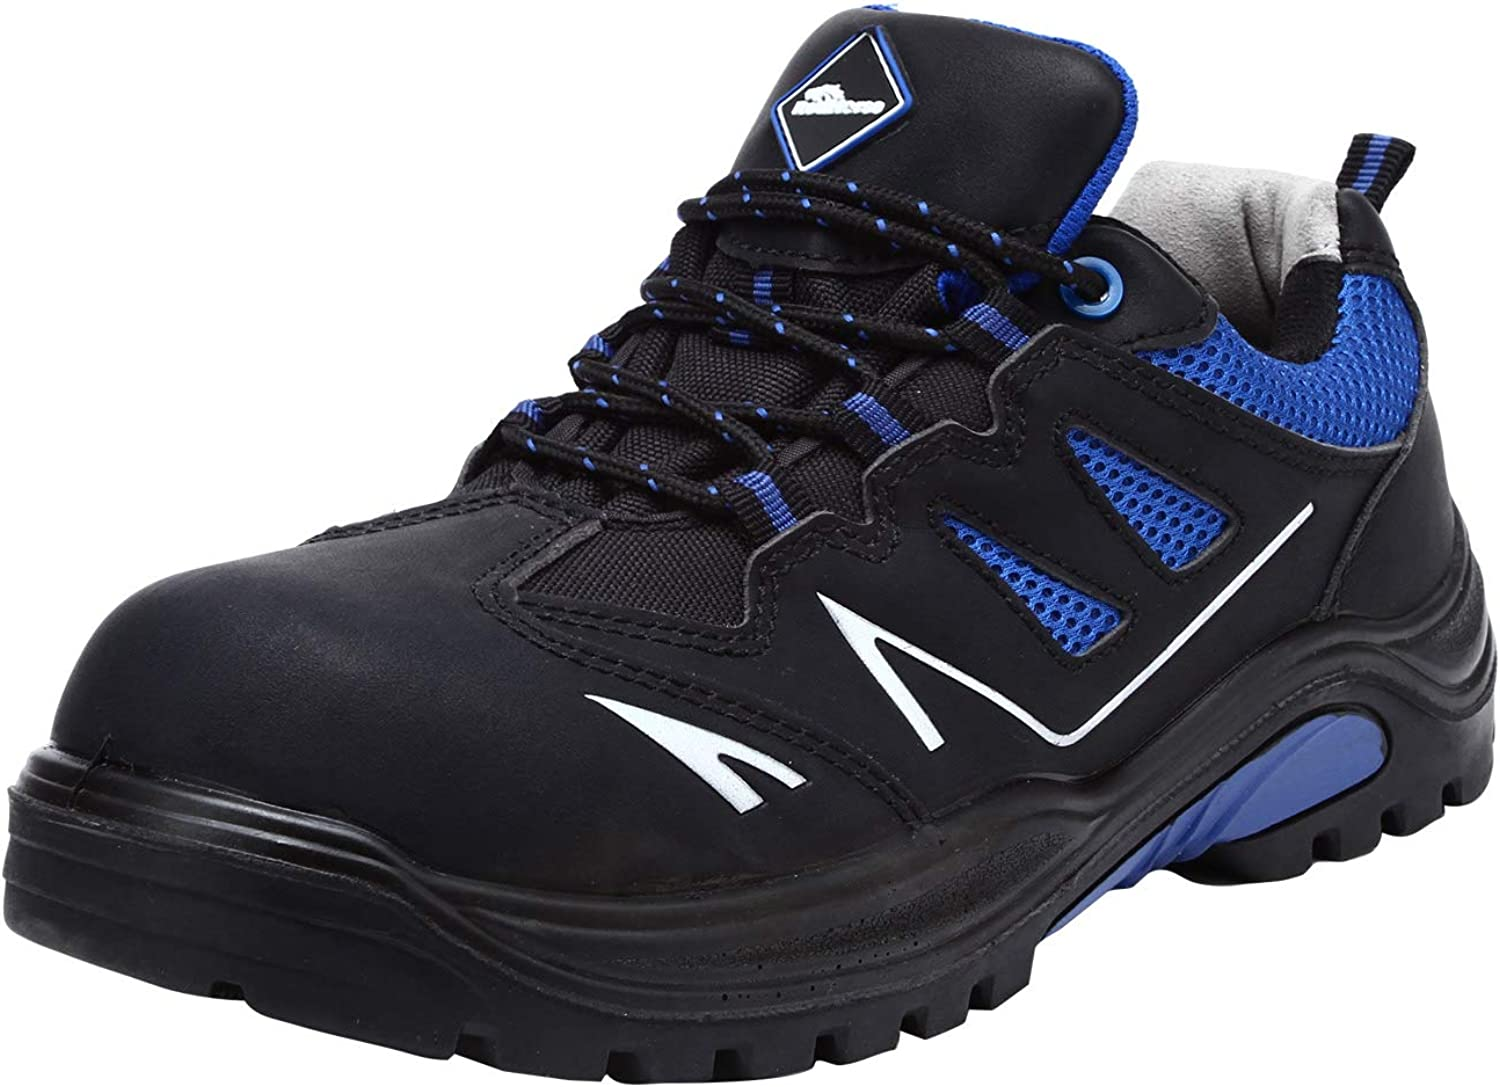 Mens Composite Toe Safety shoes, RH-760 EH SRC Breathable Lightweight Work Trainers Slip Resistant